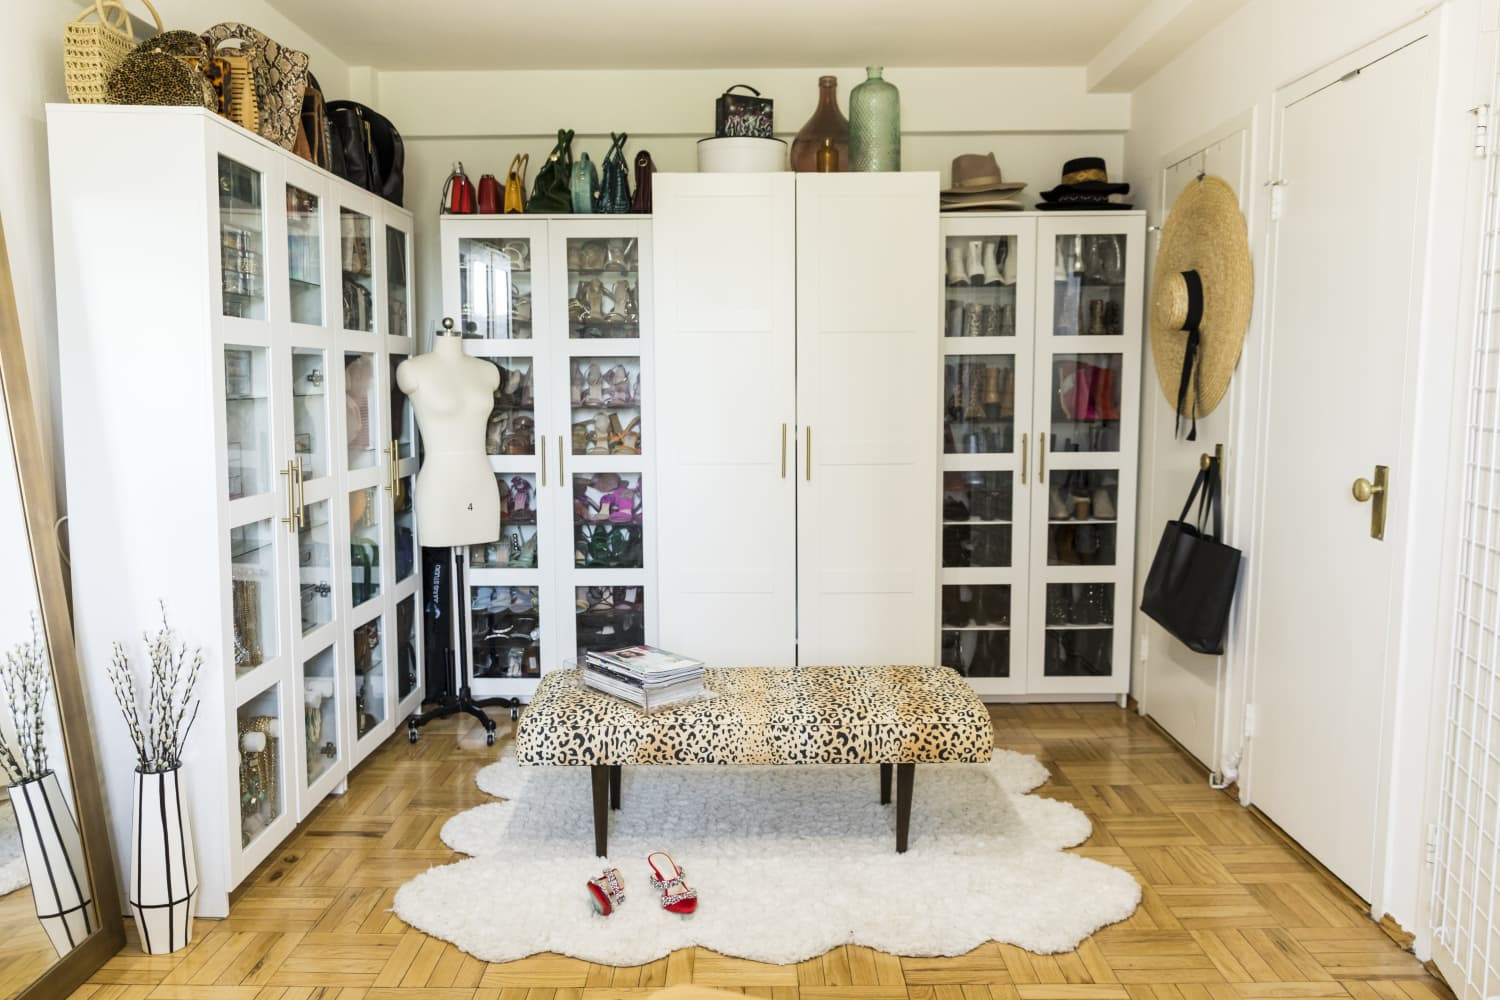 Here's How To Fake A Bespoke Wardrobe on a Budget With IKEA